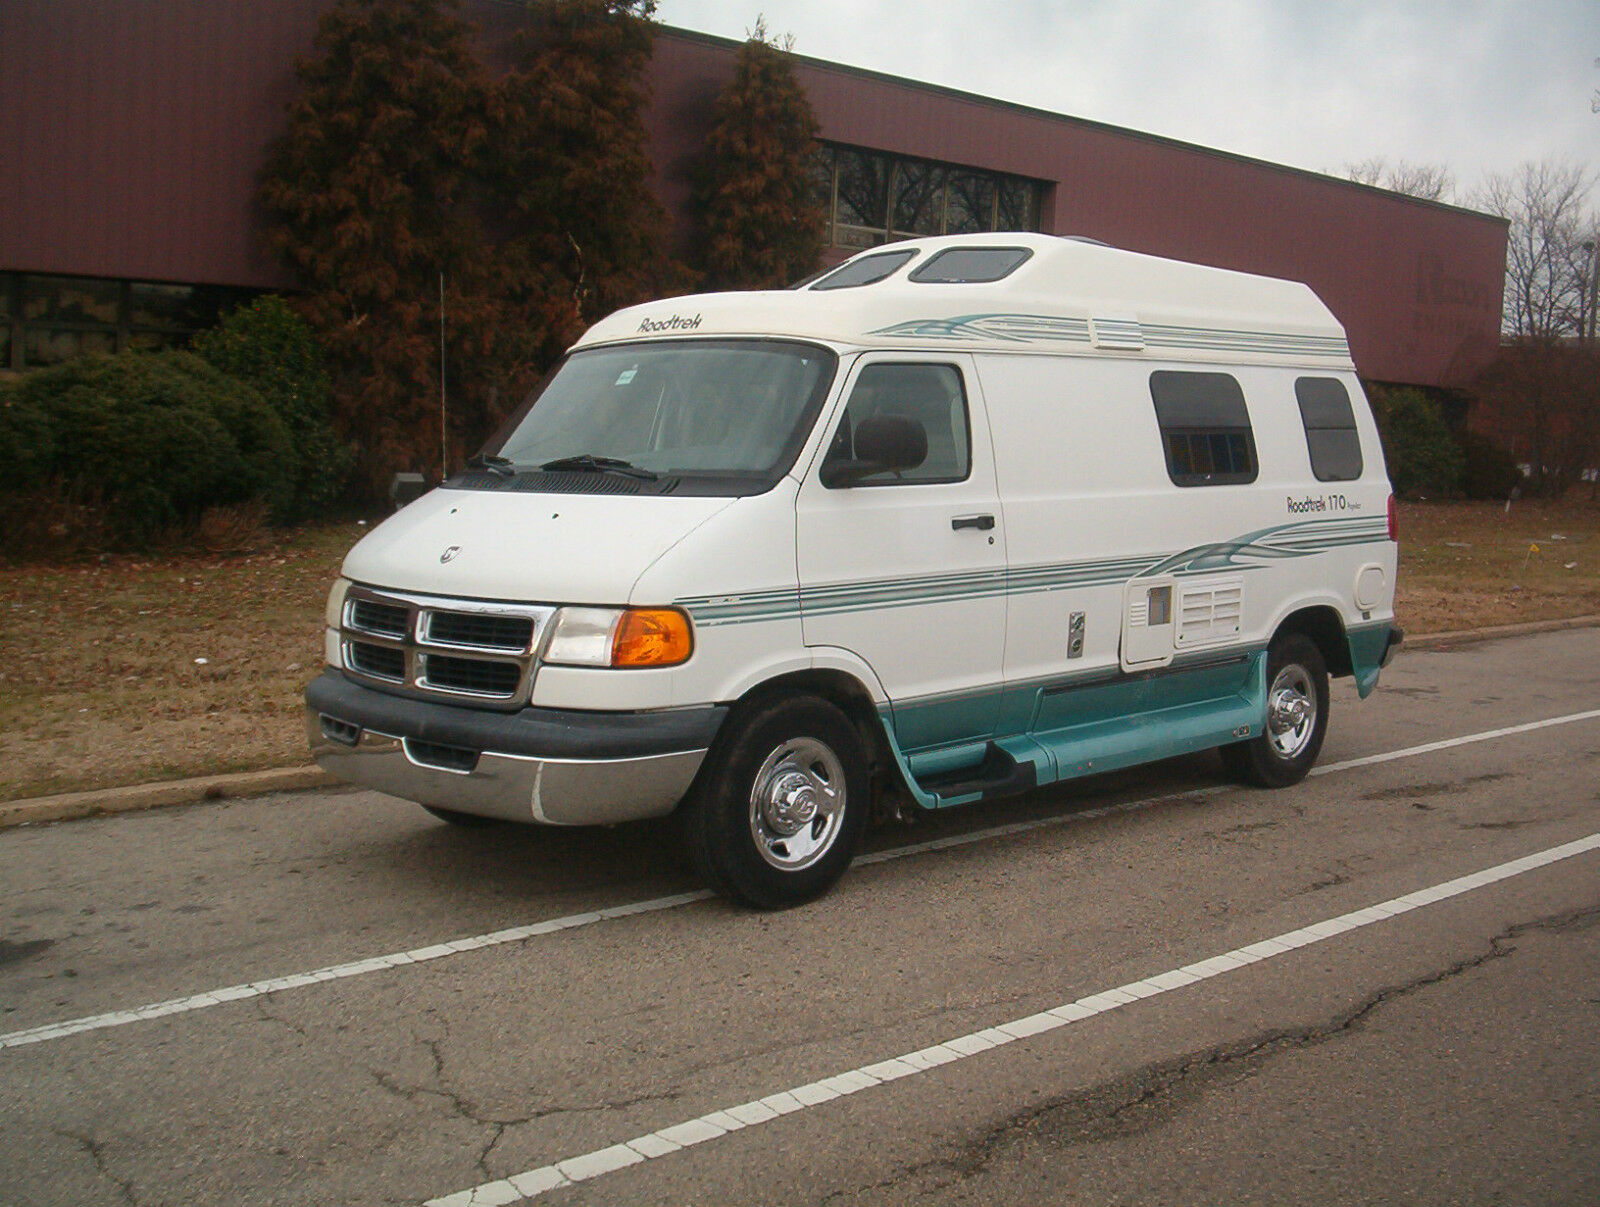 Excellent 2001 ROADTREK 170 POPULAR DODGE CLASS B MOTORHOME RV CAMPER GENERATOR